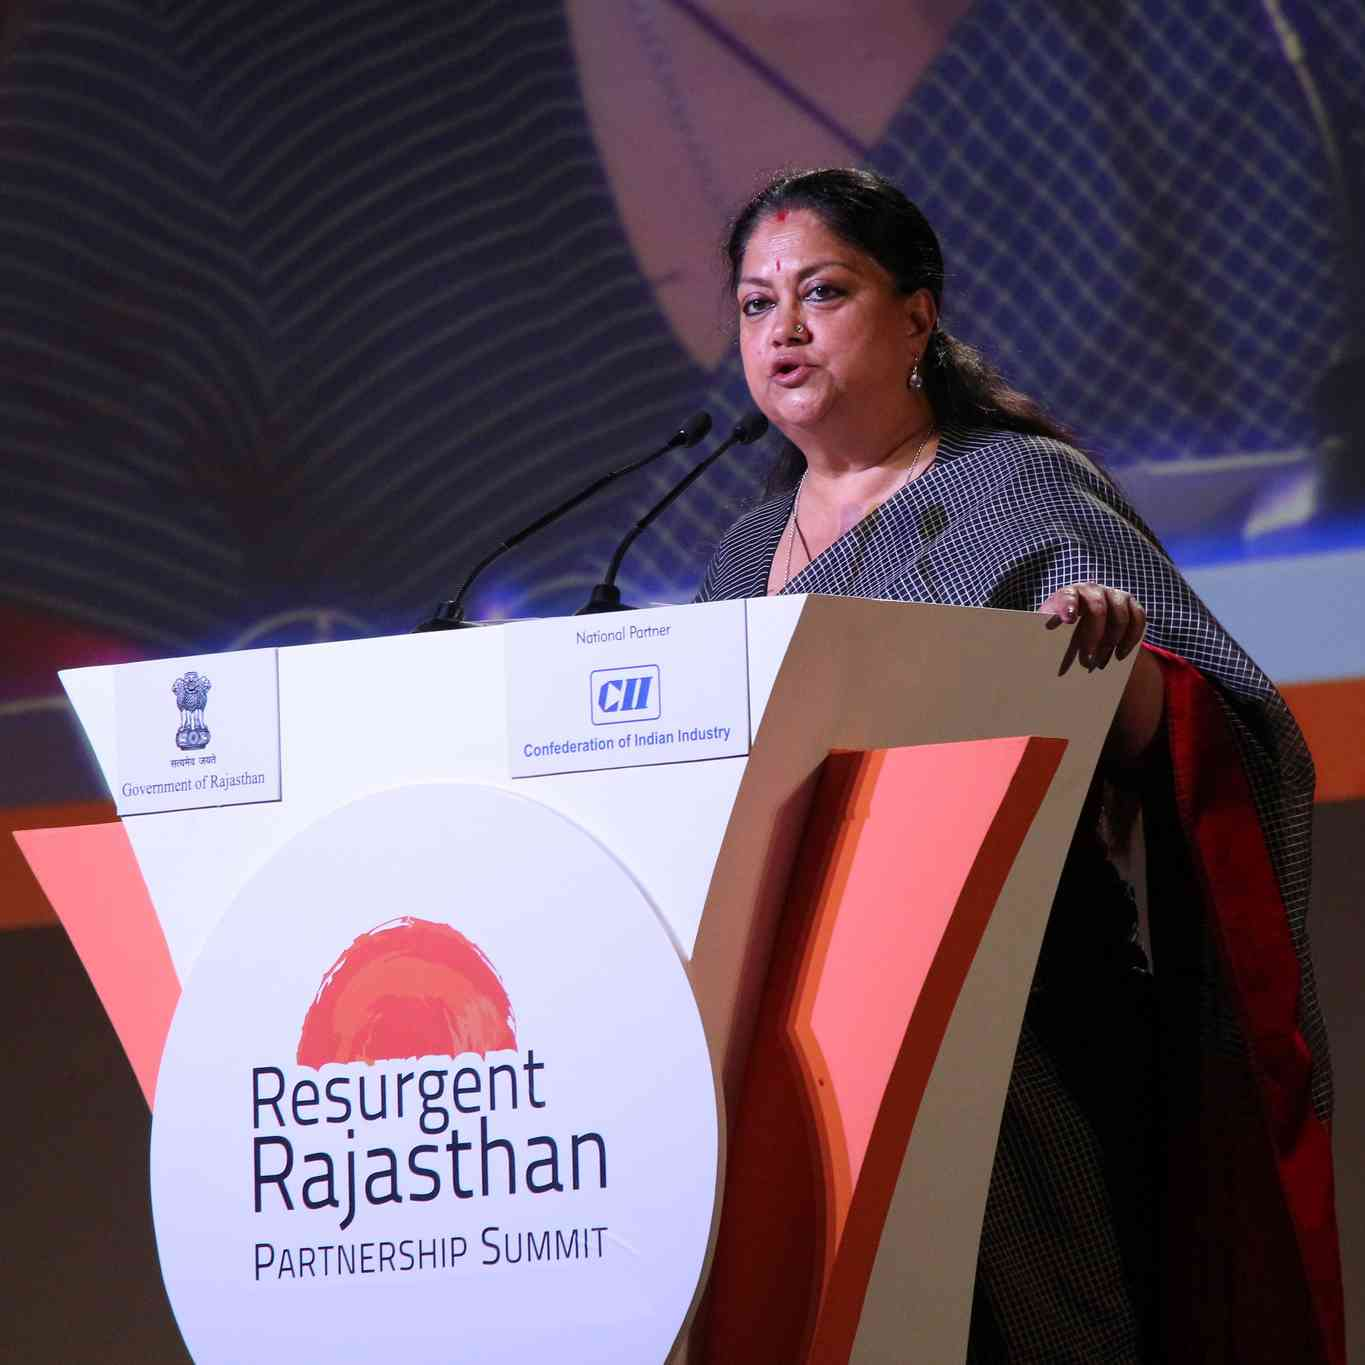 CM Vasundhara Raje at Resurgent Rajasthan Partnership Summit